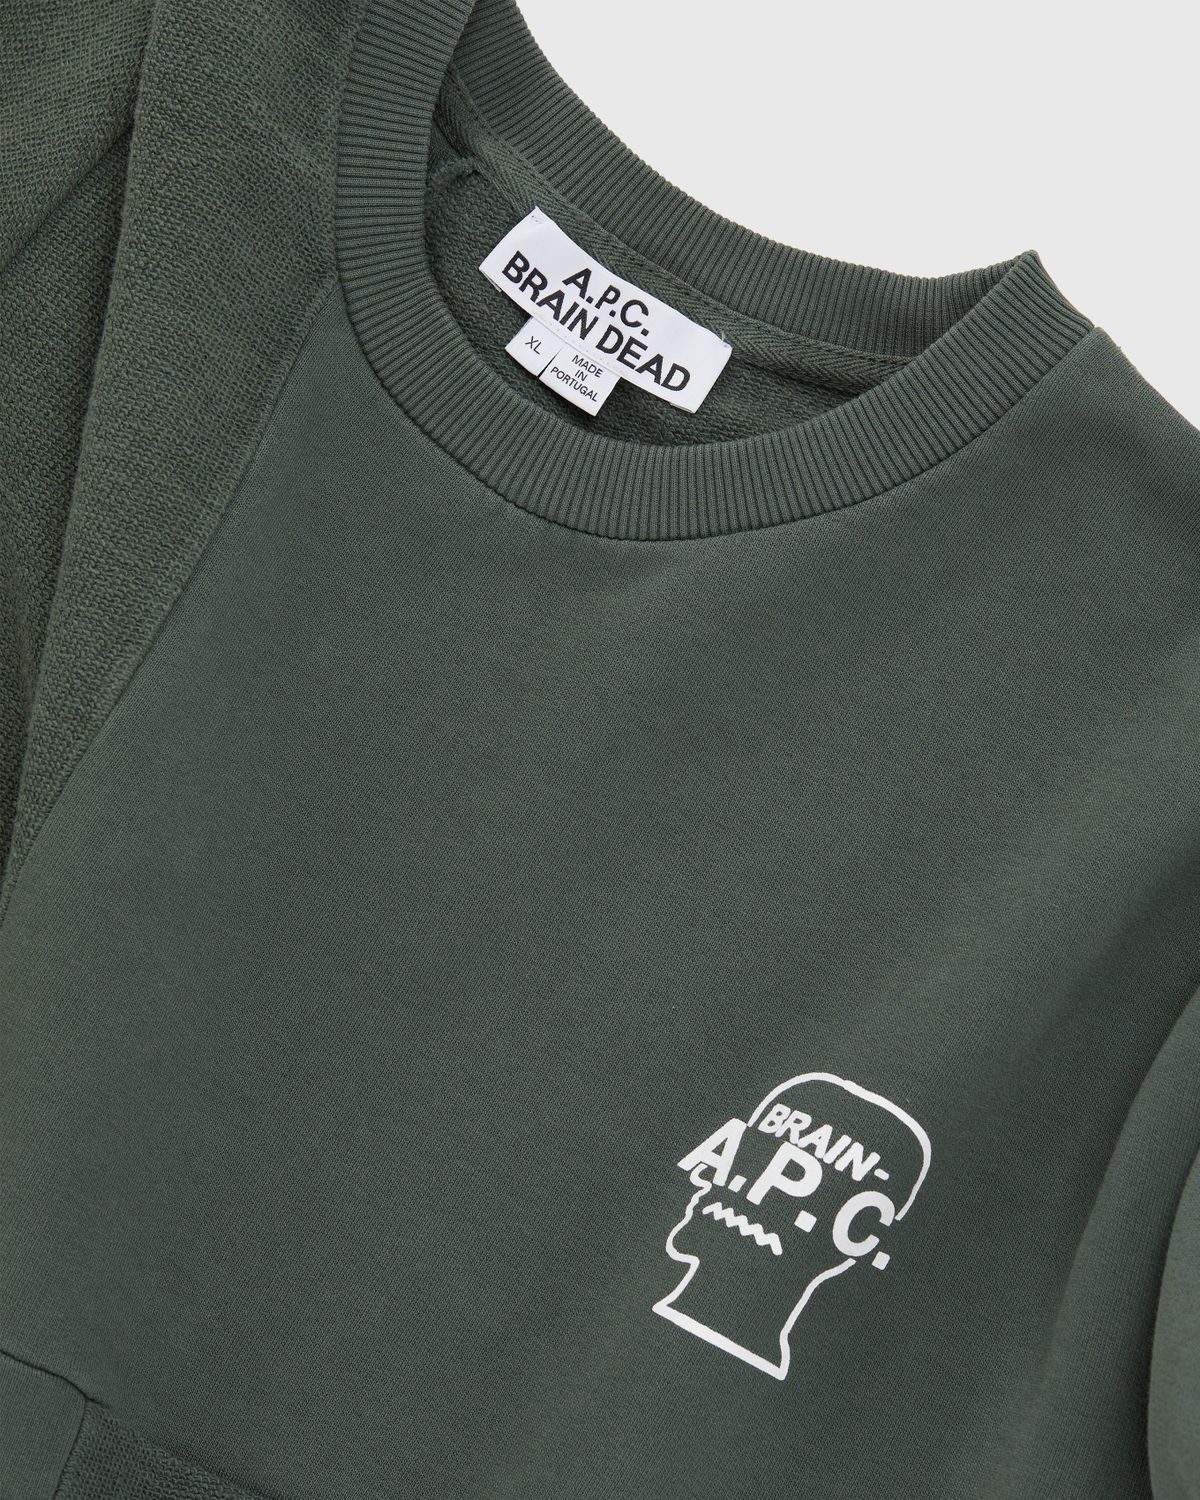 A.P.C. x BRAIN DEAD — Pony Grey Green - Image 3